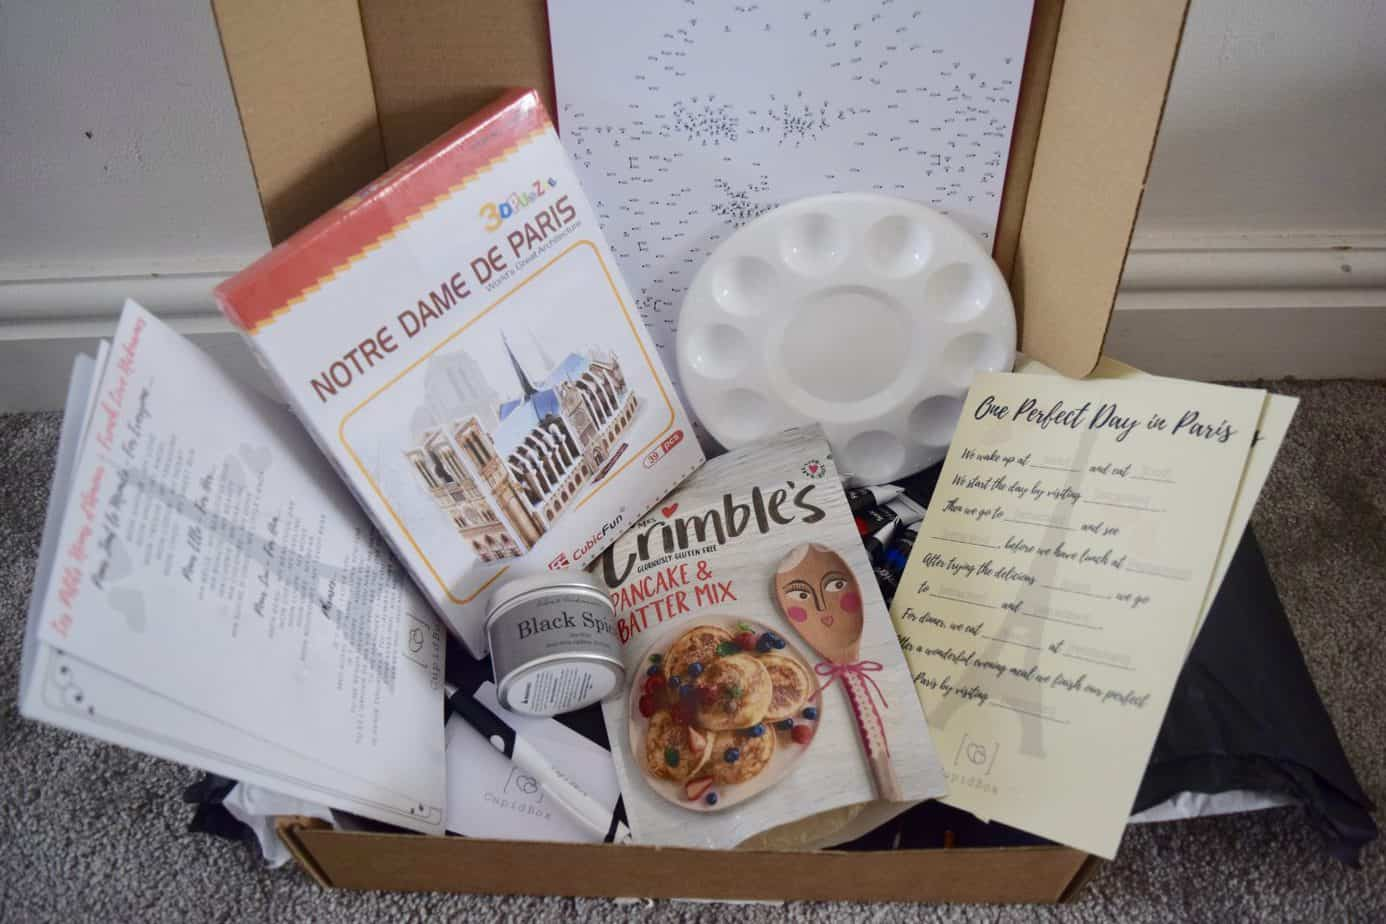 All of our goodies inside our cupid box, including pancake mix, painting items, and a 3D puzzle